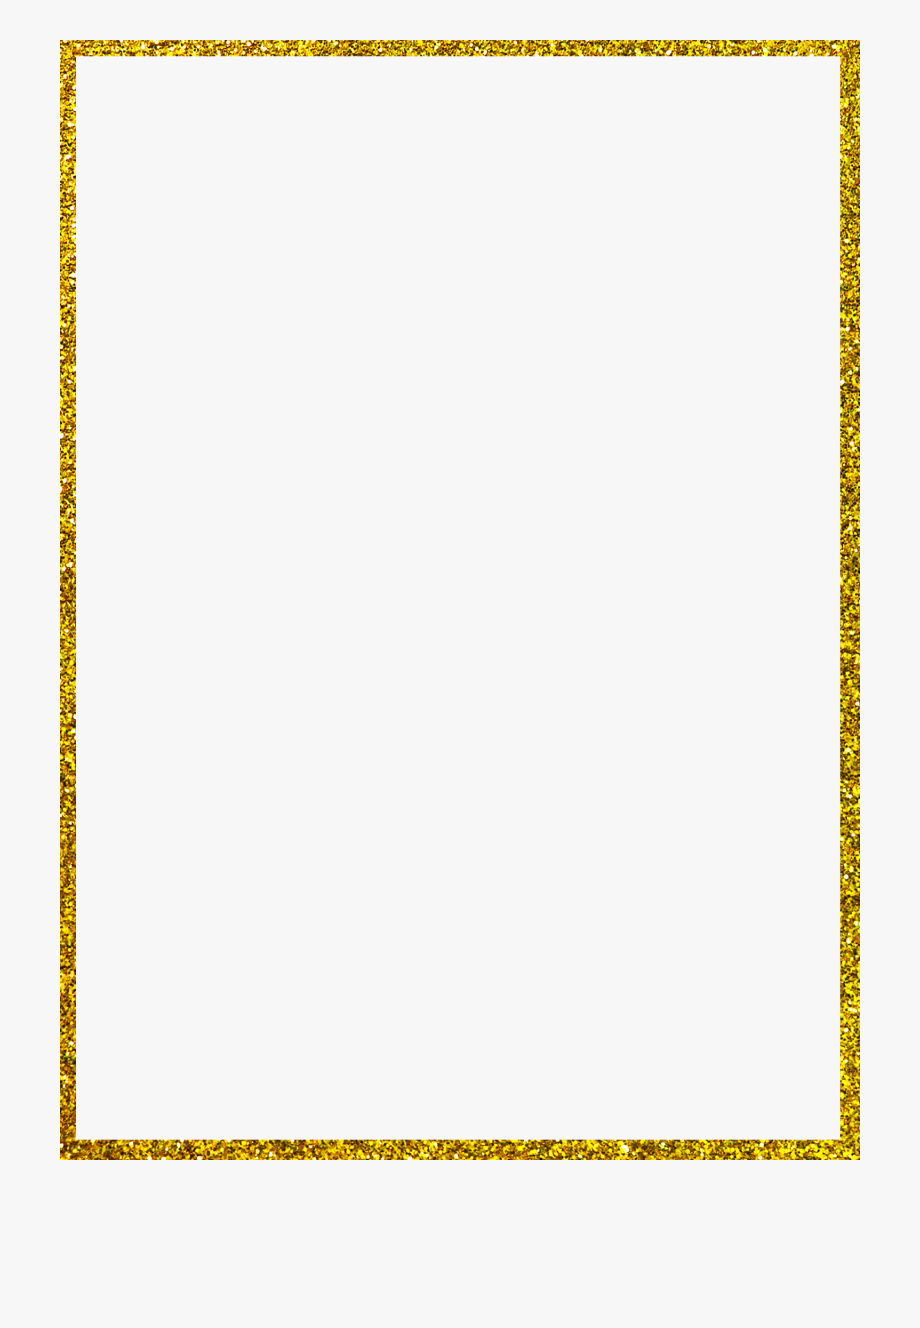 Hd pbl border parallel. Boarder clipart rectangle